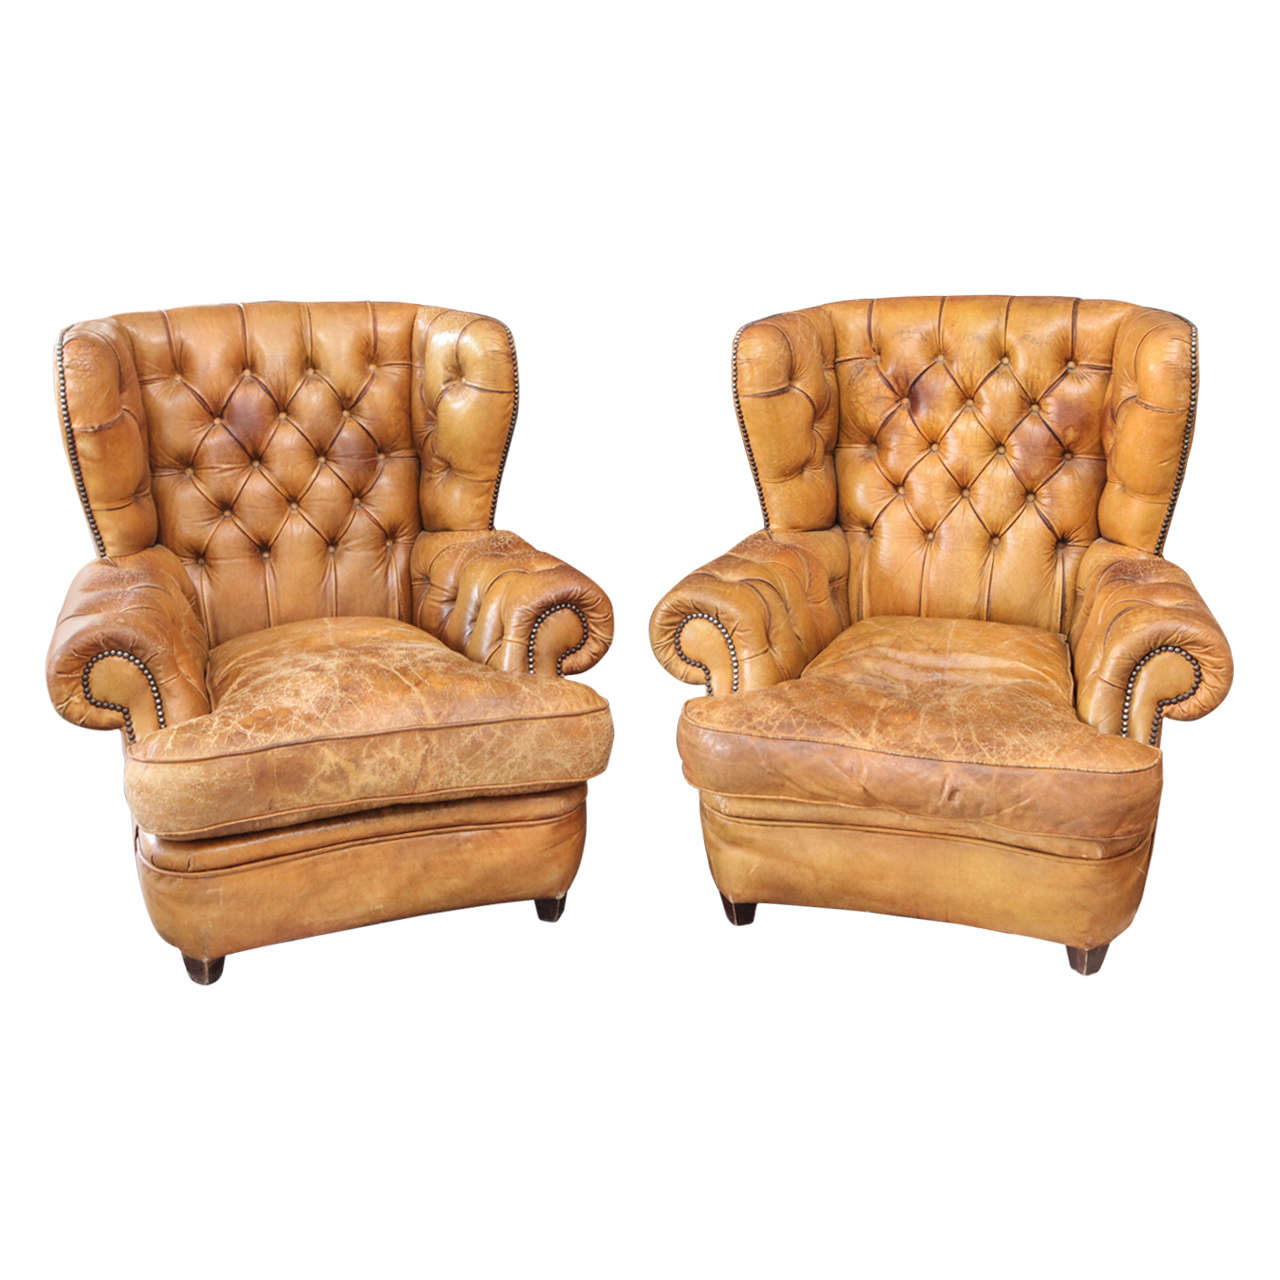 Unique Armchairs 1930 39s Pair Of Unbelievable Chesterfield Chairs With